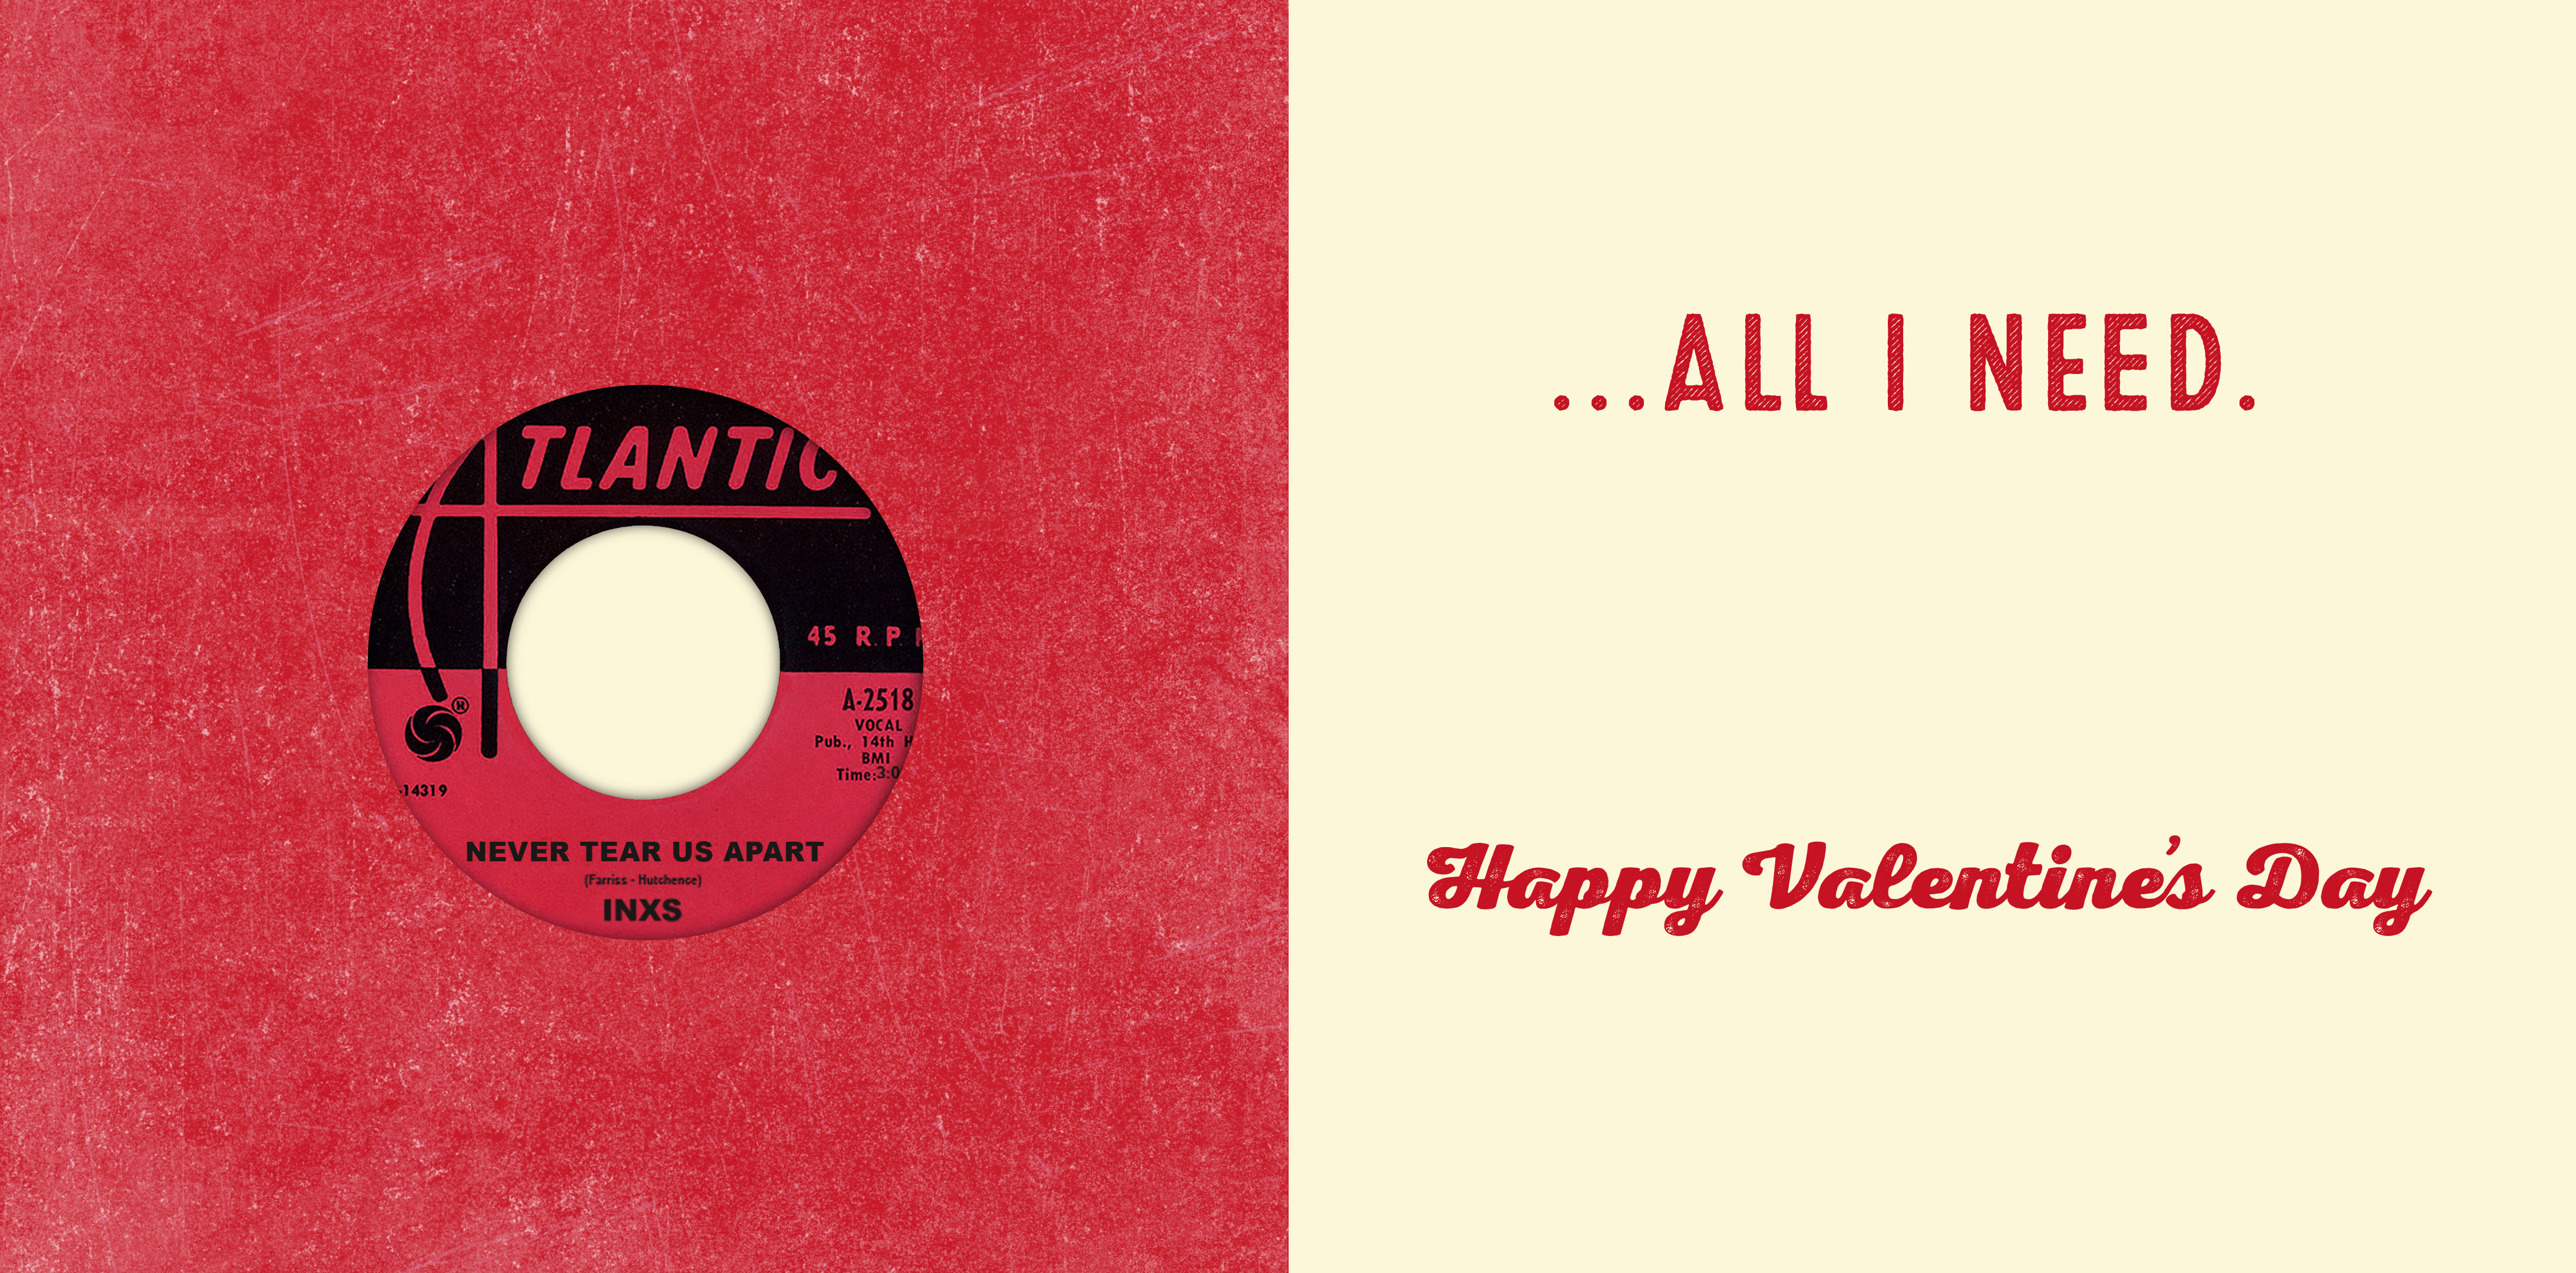 Romantic Valentine's Day Card With Vinyl Record